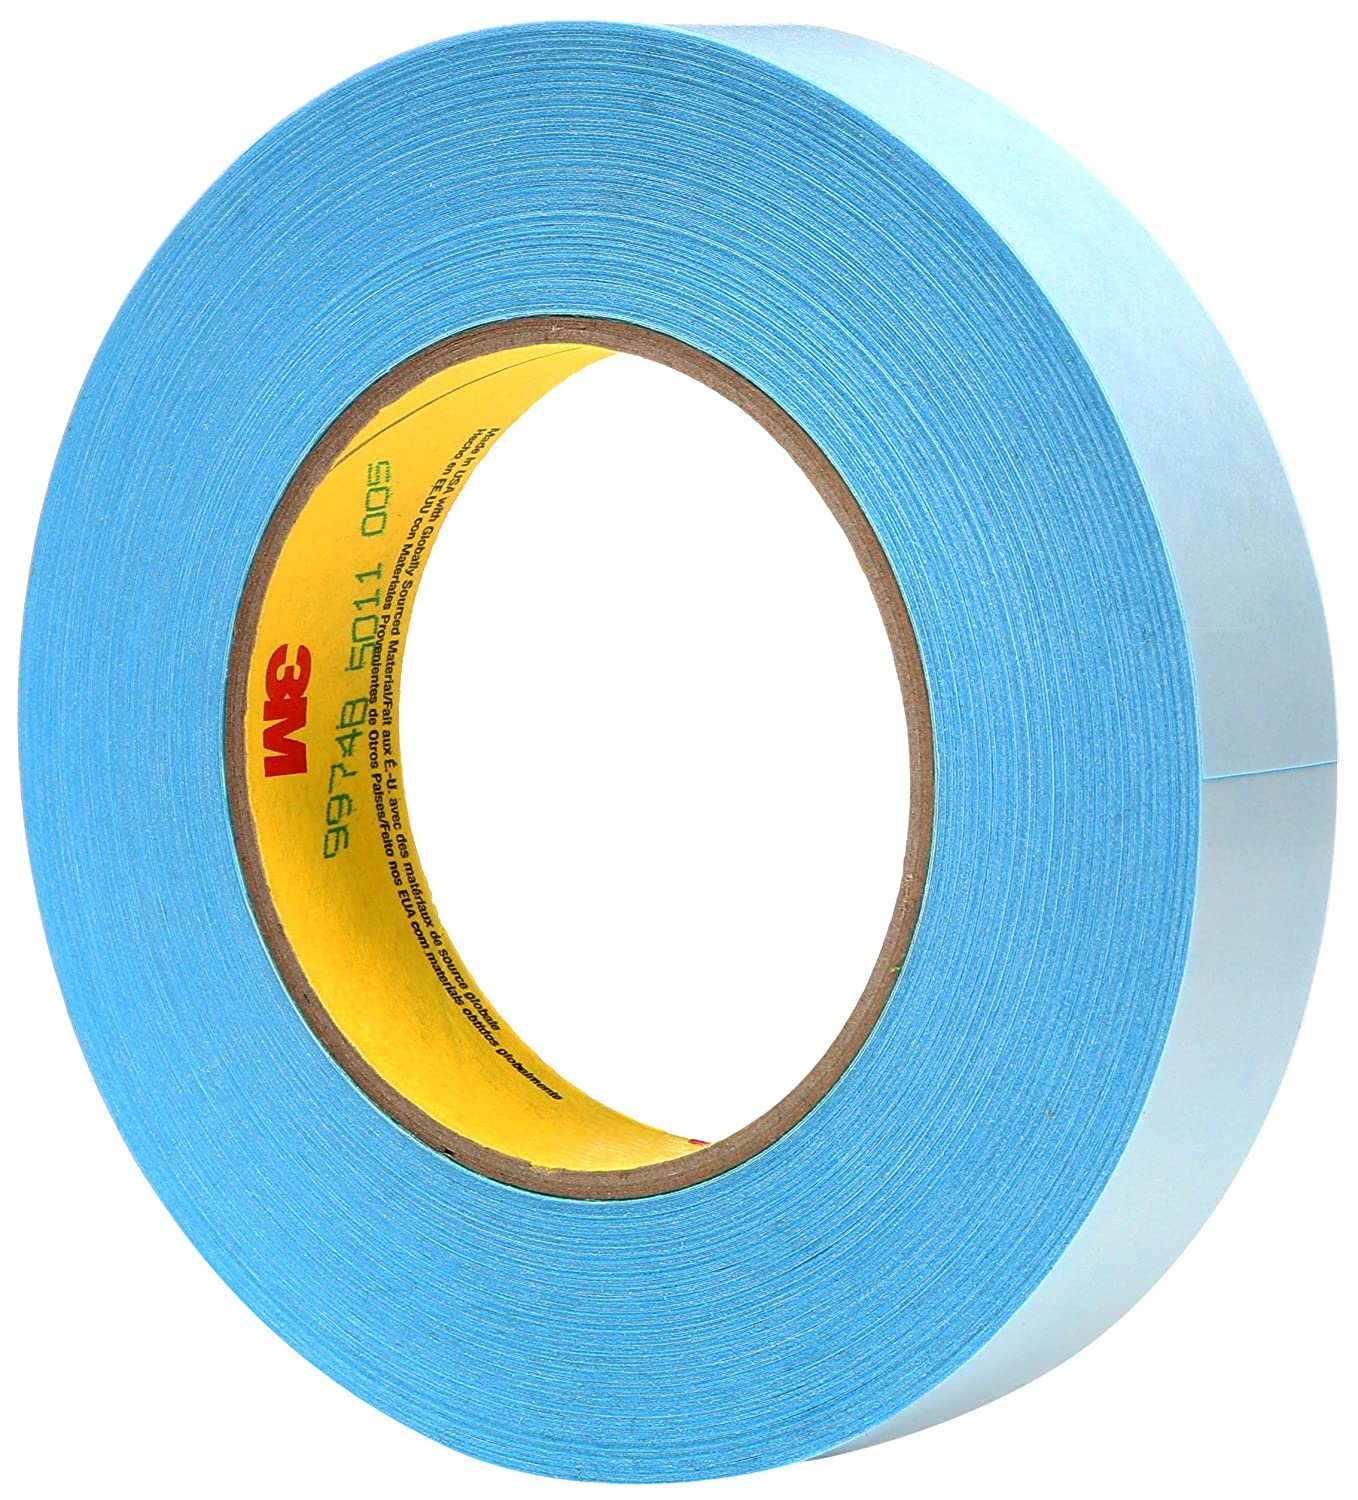 3M 17559-case Superior Repulpable Double Coated Tape 24 x 9974B shipfree mm m 55